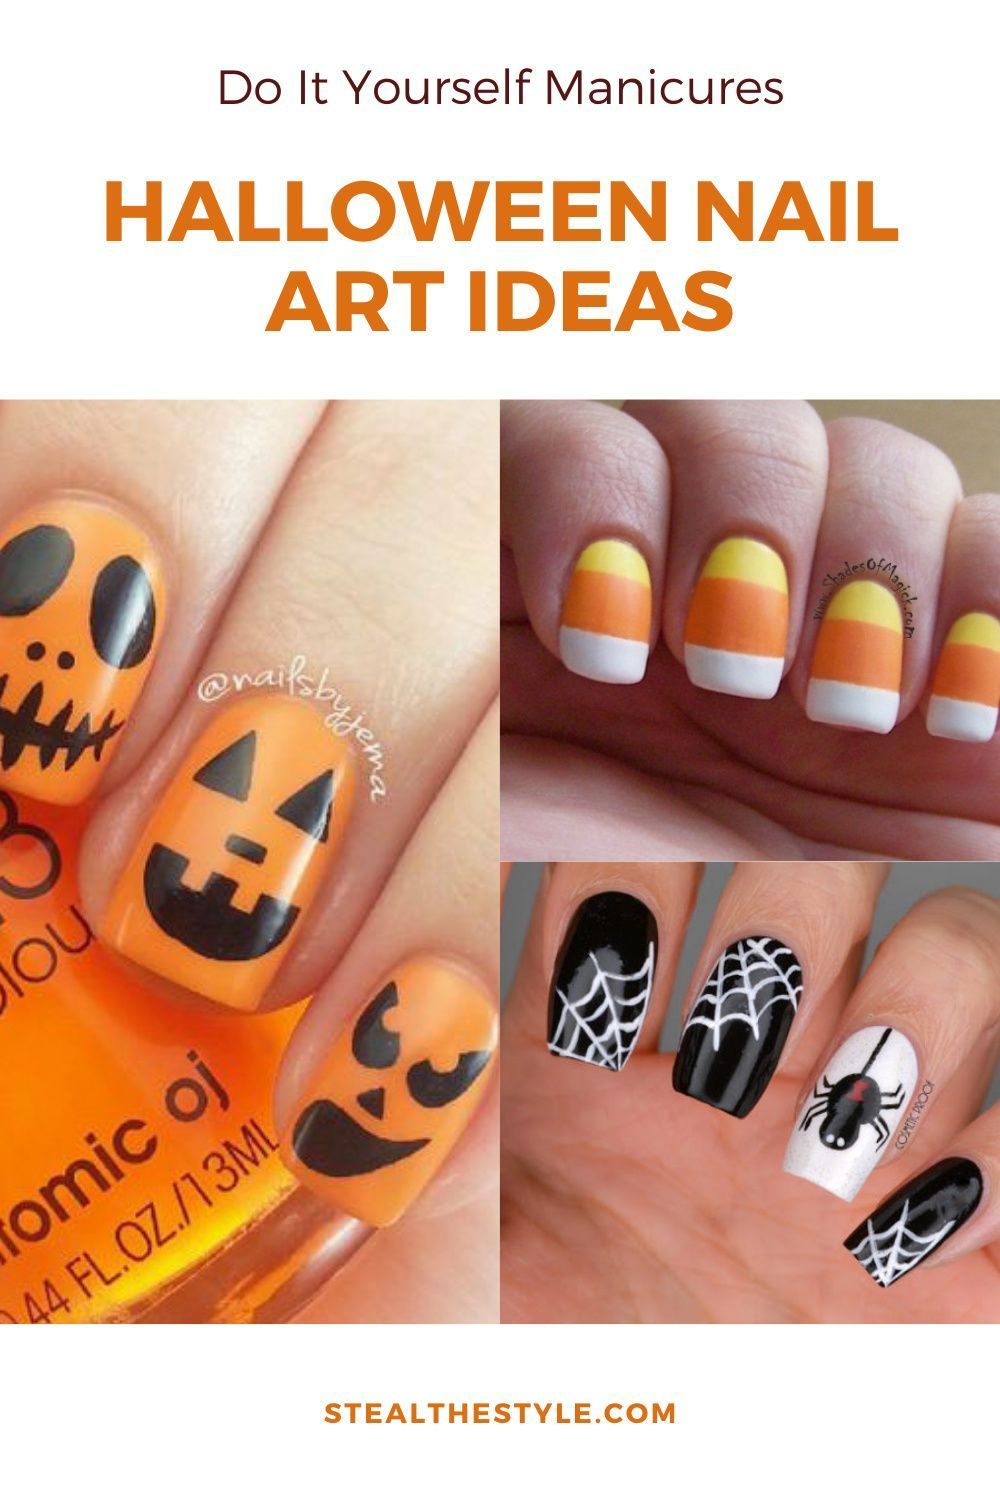 Halloween Nail Art Ideas That You Can Do Yourself In 2020 Halloween Nails Halloween Nails Easy Nails